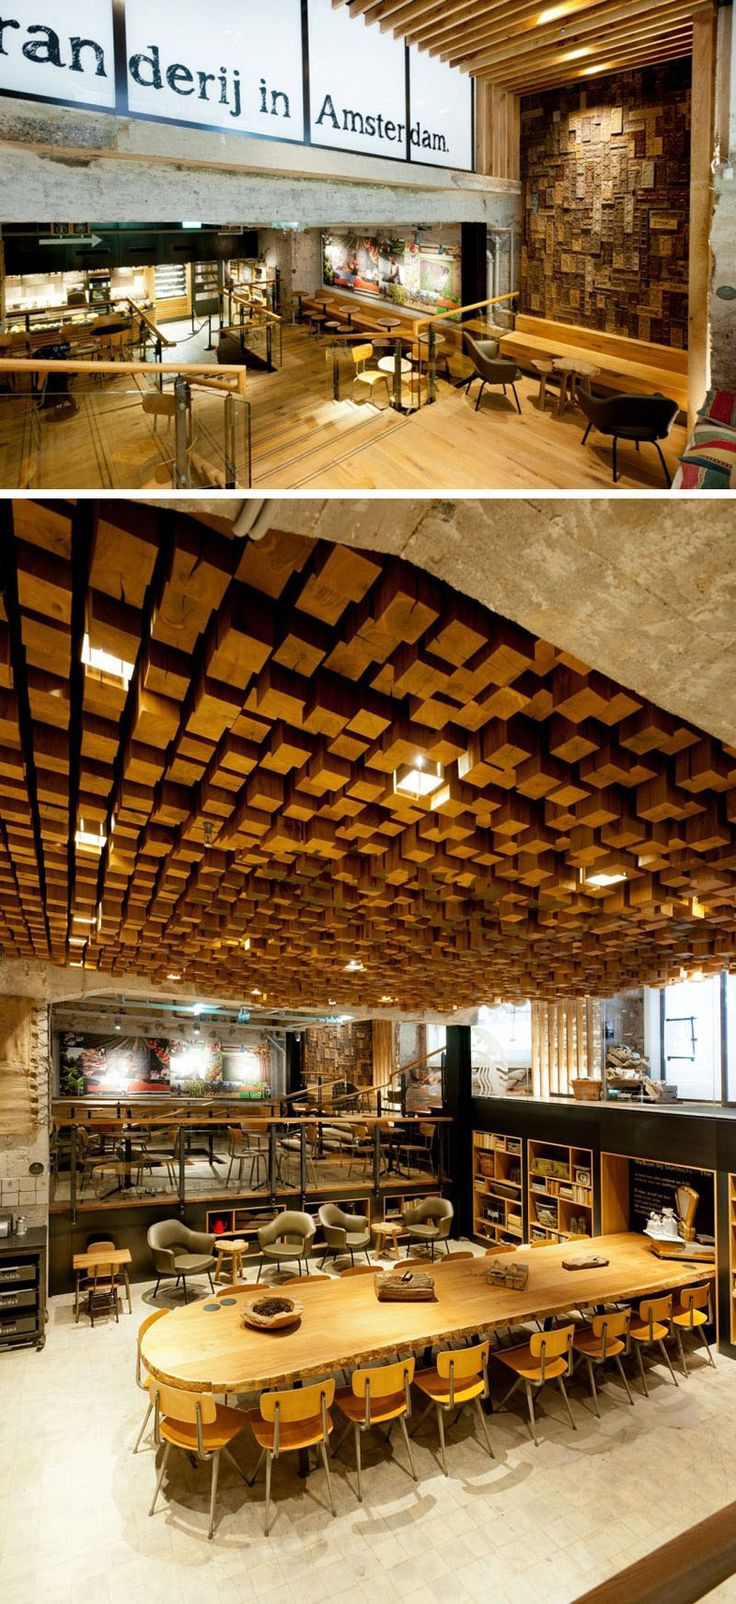 11 Of The Most Uniquely Designed Starbucks Coffee Shops From Around The World |  By including many Dutch elements in the design of this location and keeping original elements of the structure – like the marble floor – this Starbucks concept store in Amsterdam takes away some of the American feel and makes the store feel a bit more like a local coffee shop.